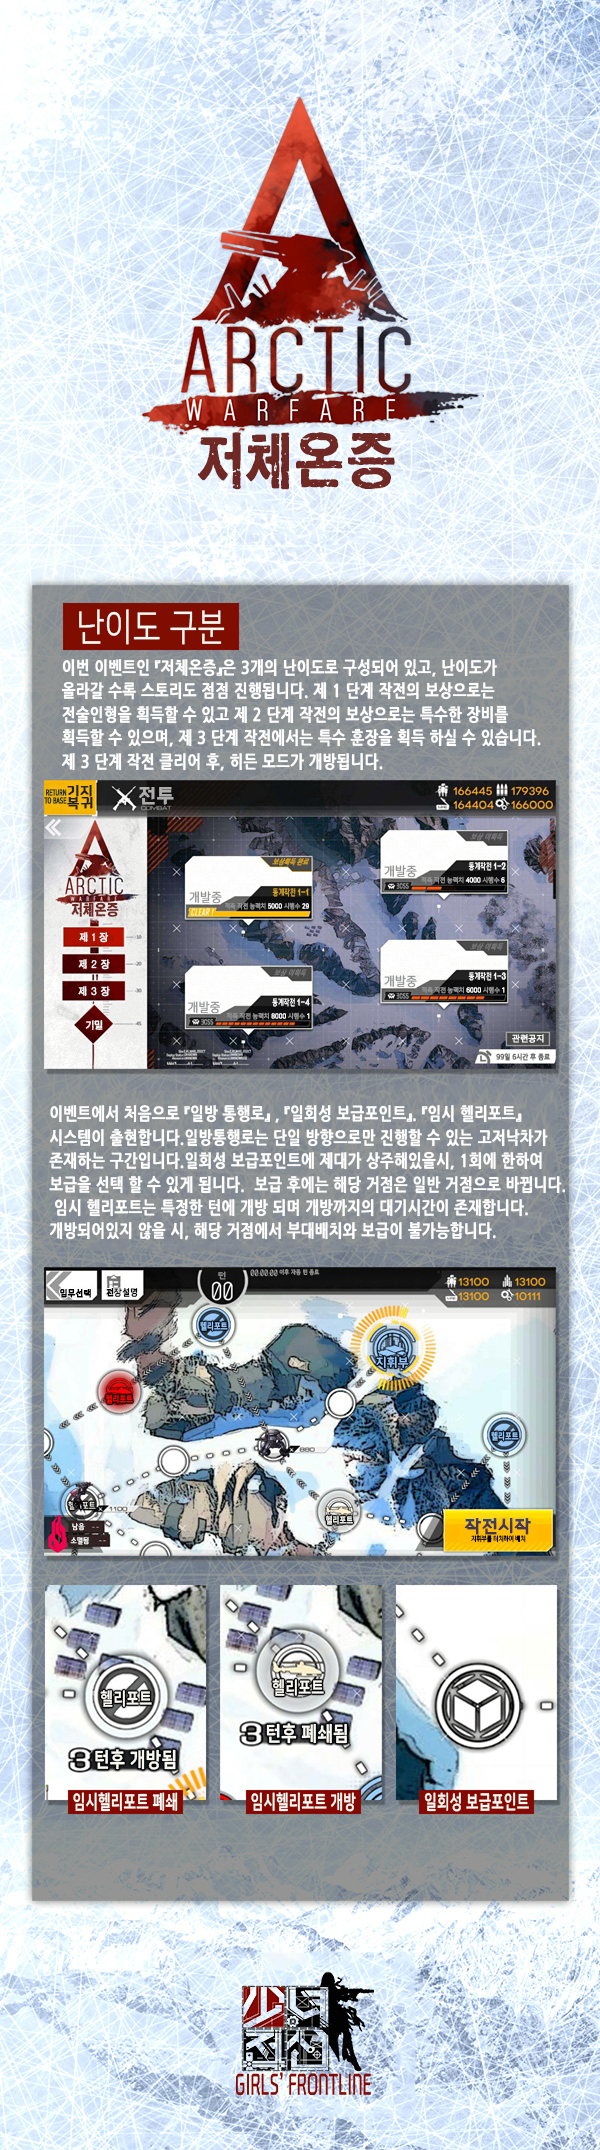 1501211330.png